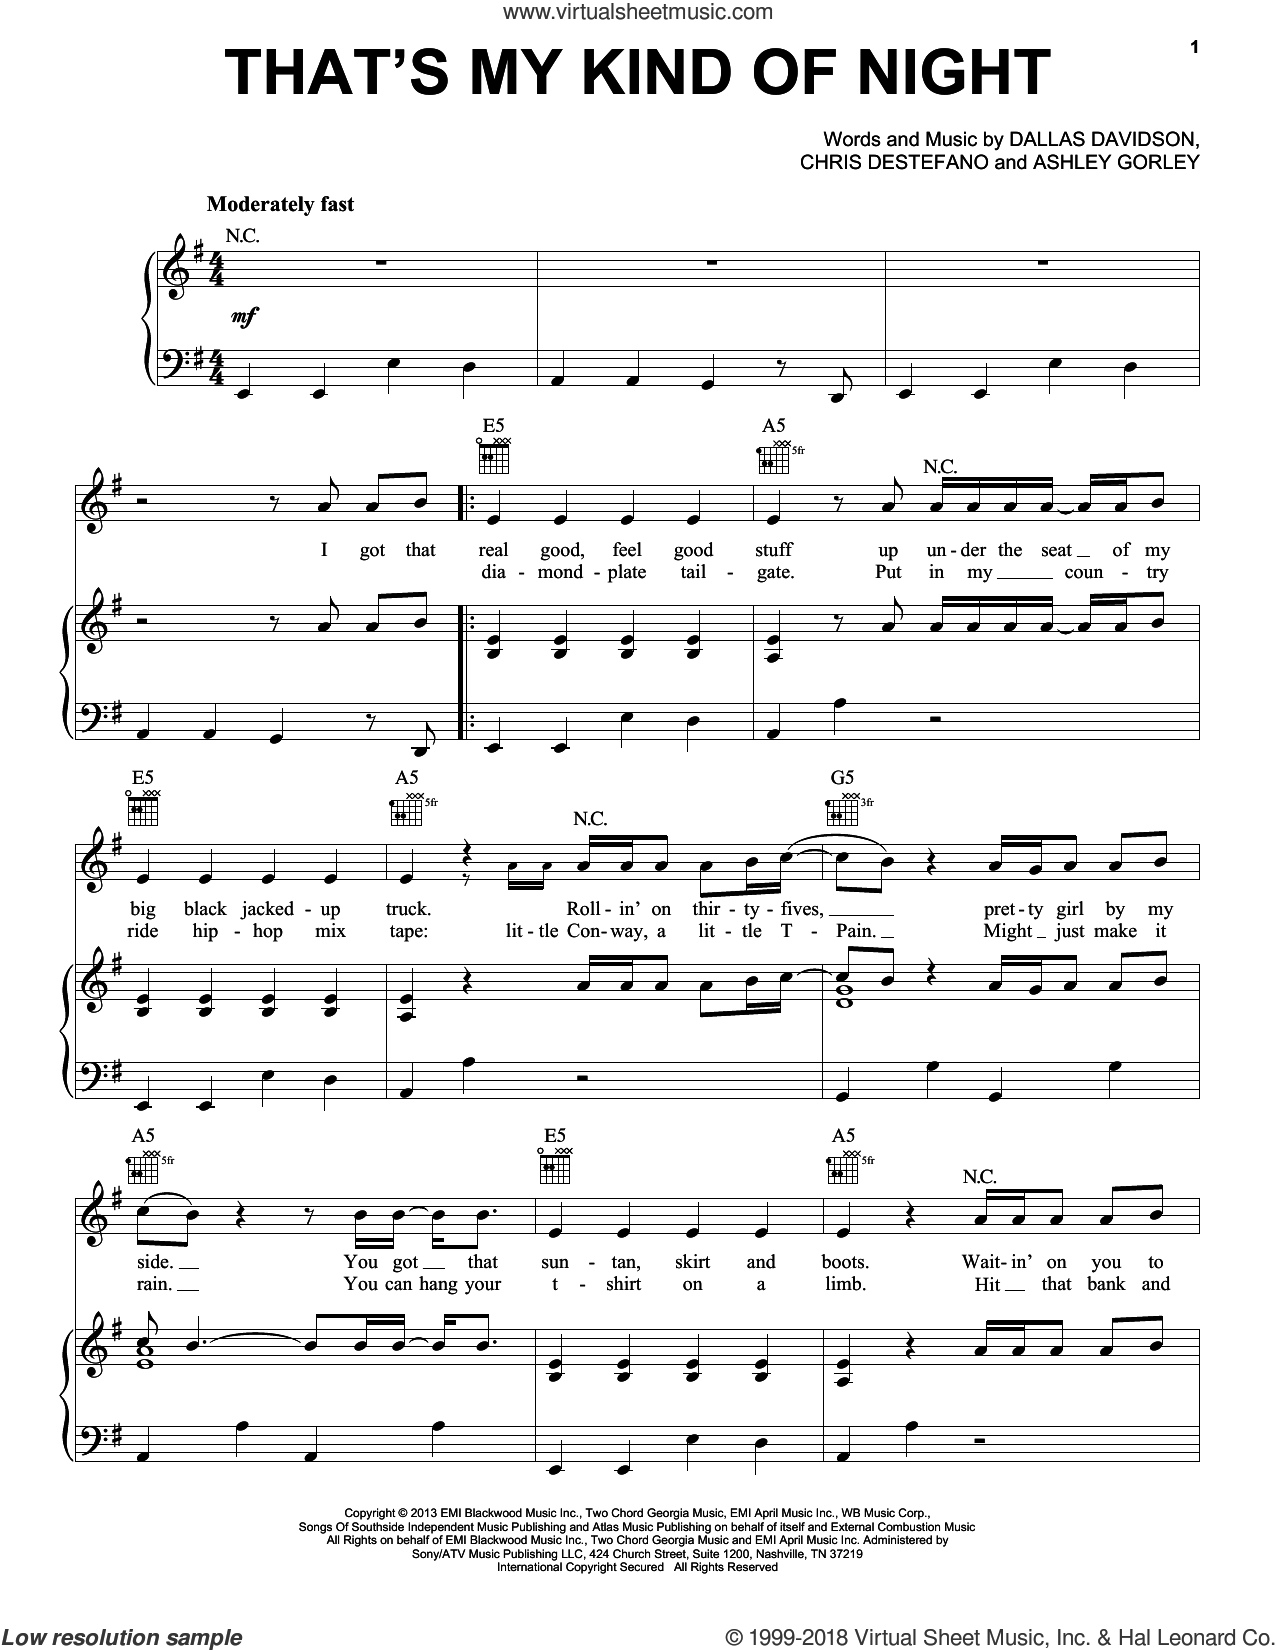 That's My Kind Of Night sheet music for voice, piano or guitar by Luke Bryan